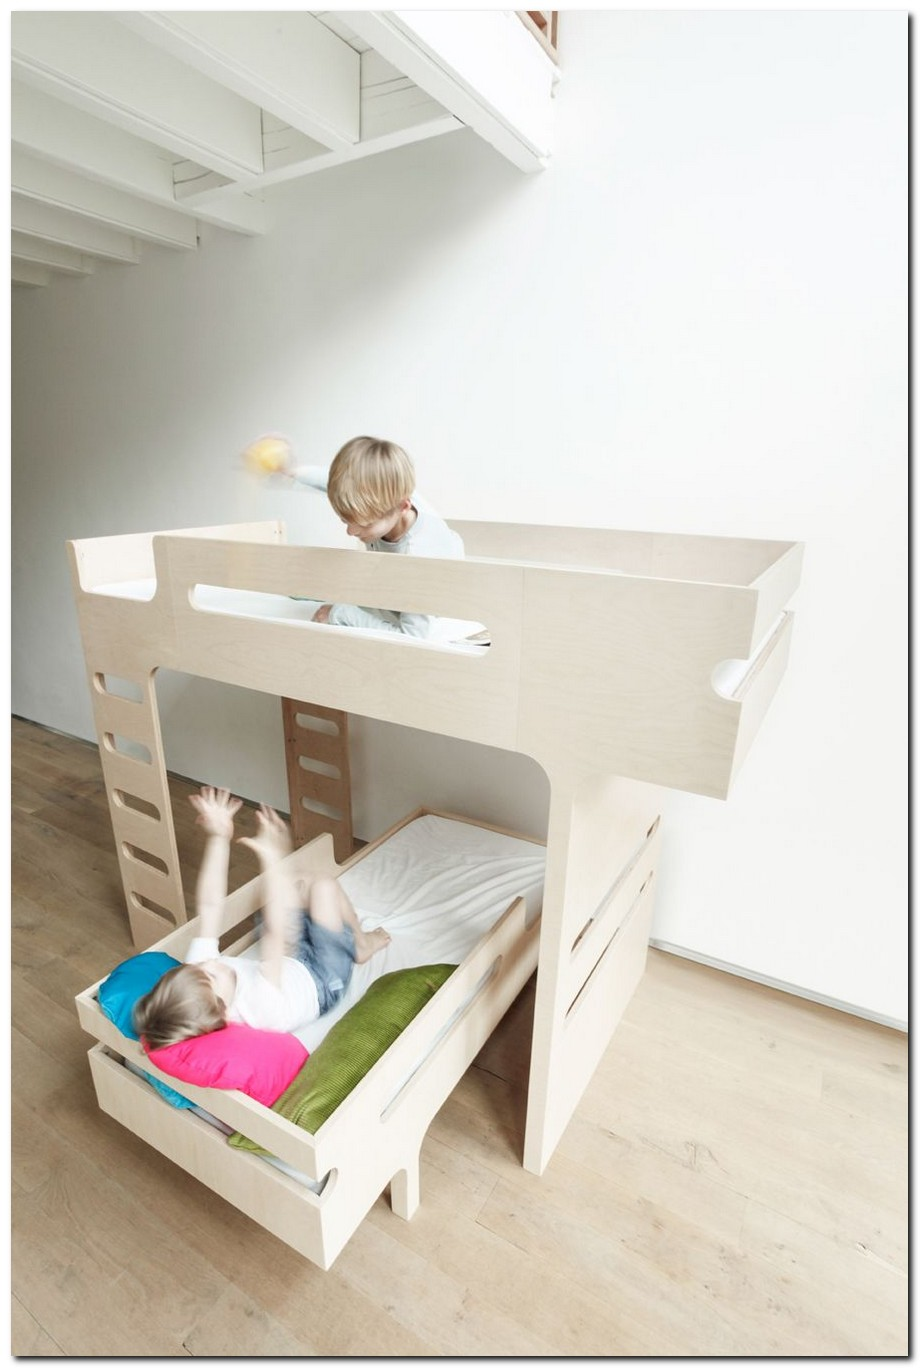 The benefits of bunk beds for kids 18